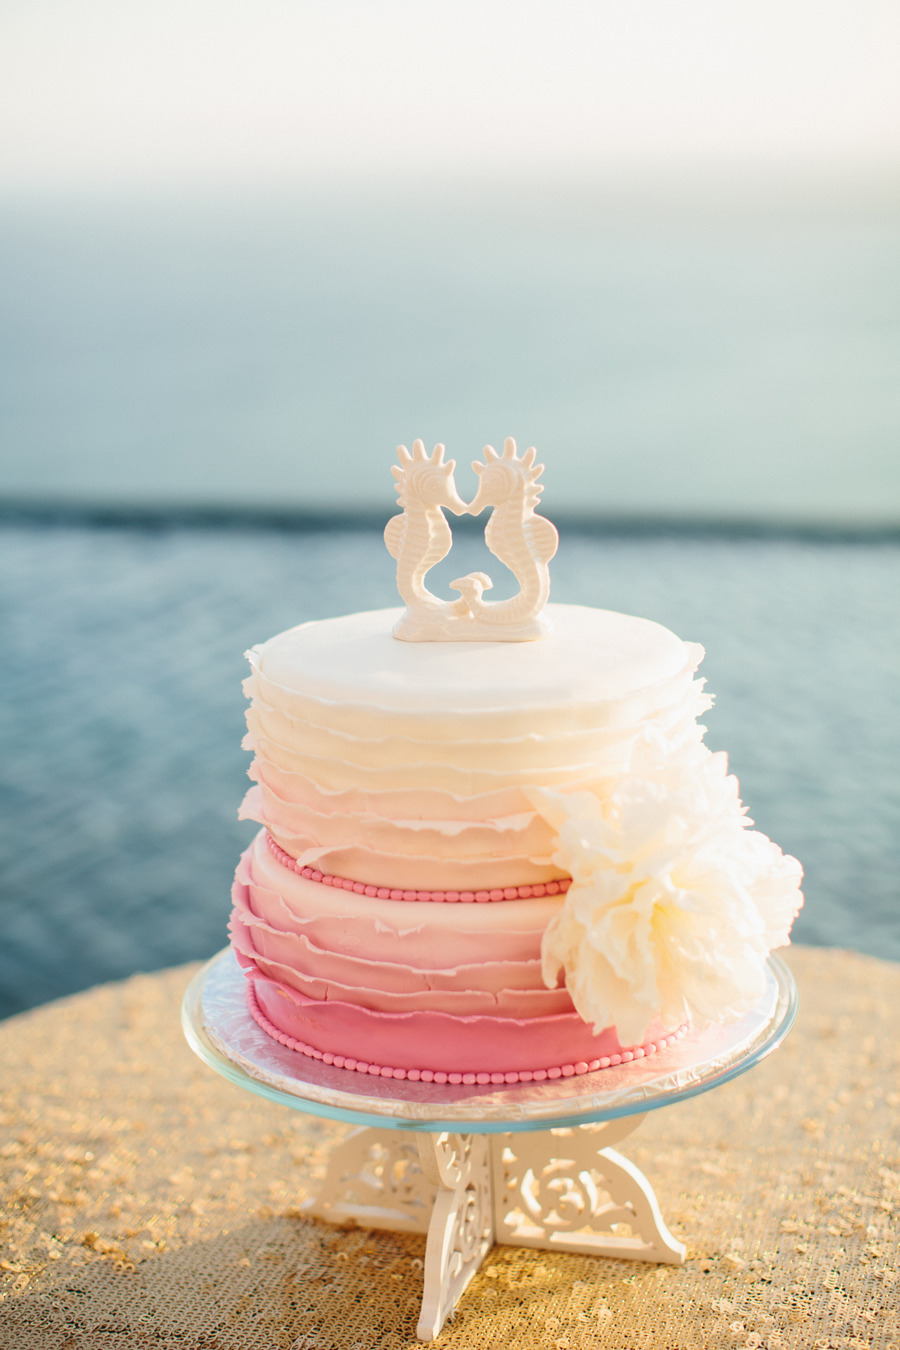 cake with seahorse topper | photo: sara & rocky | via emmalinebride.com